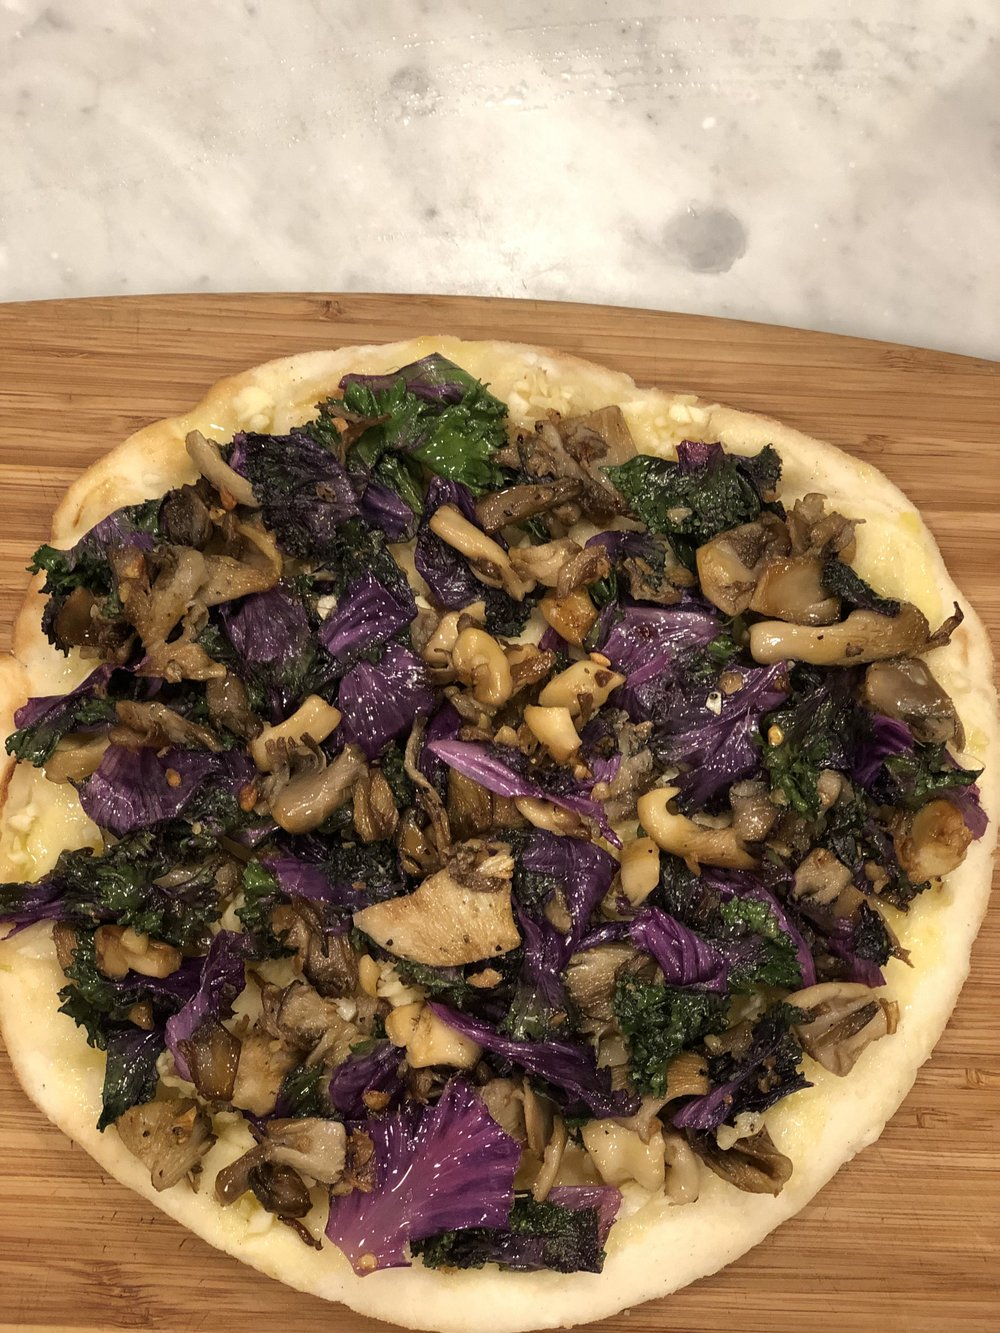 Layer on garlic, mushrooms and kale